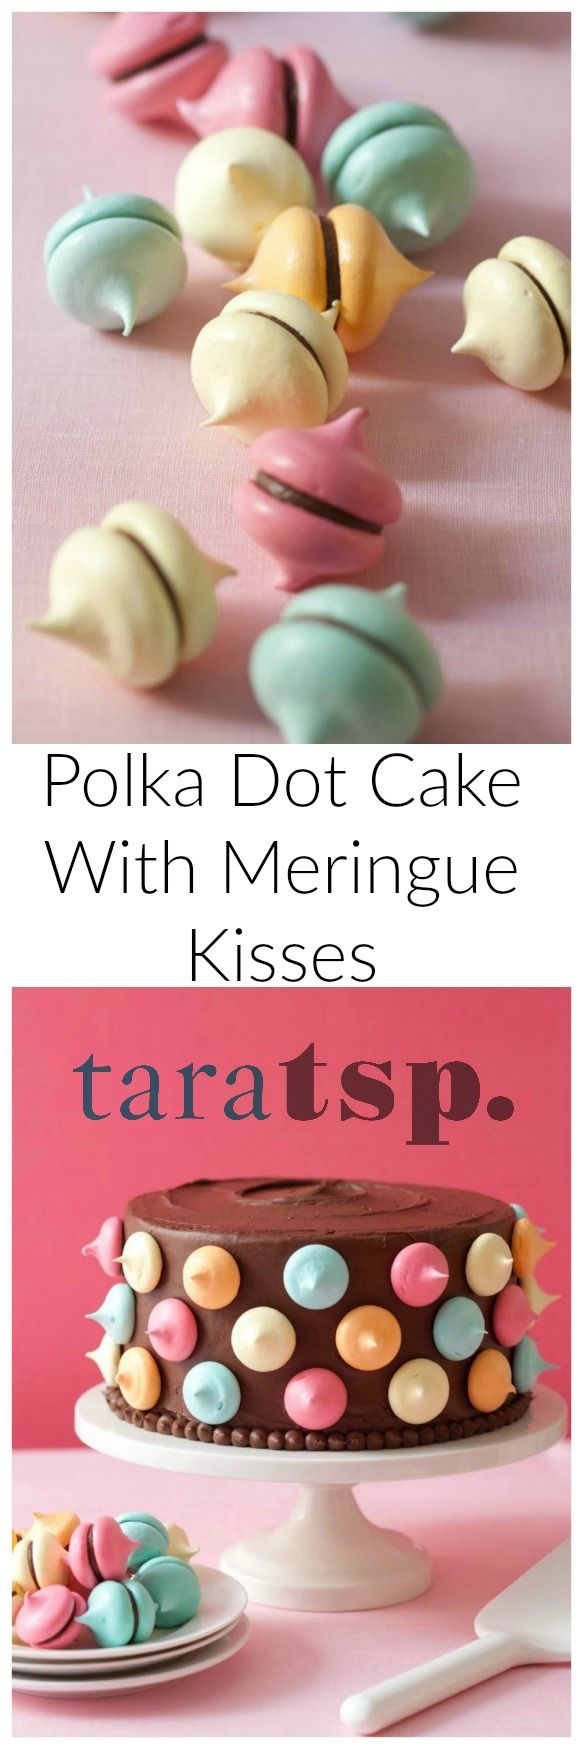 Rich chocolate frosting gets covered with light and crispy meringue kisses to make the most fun polka dot cake you'll ever make.